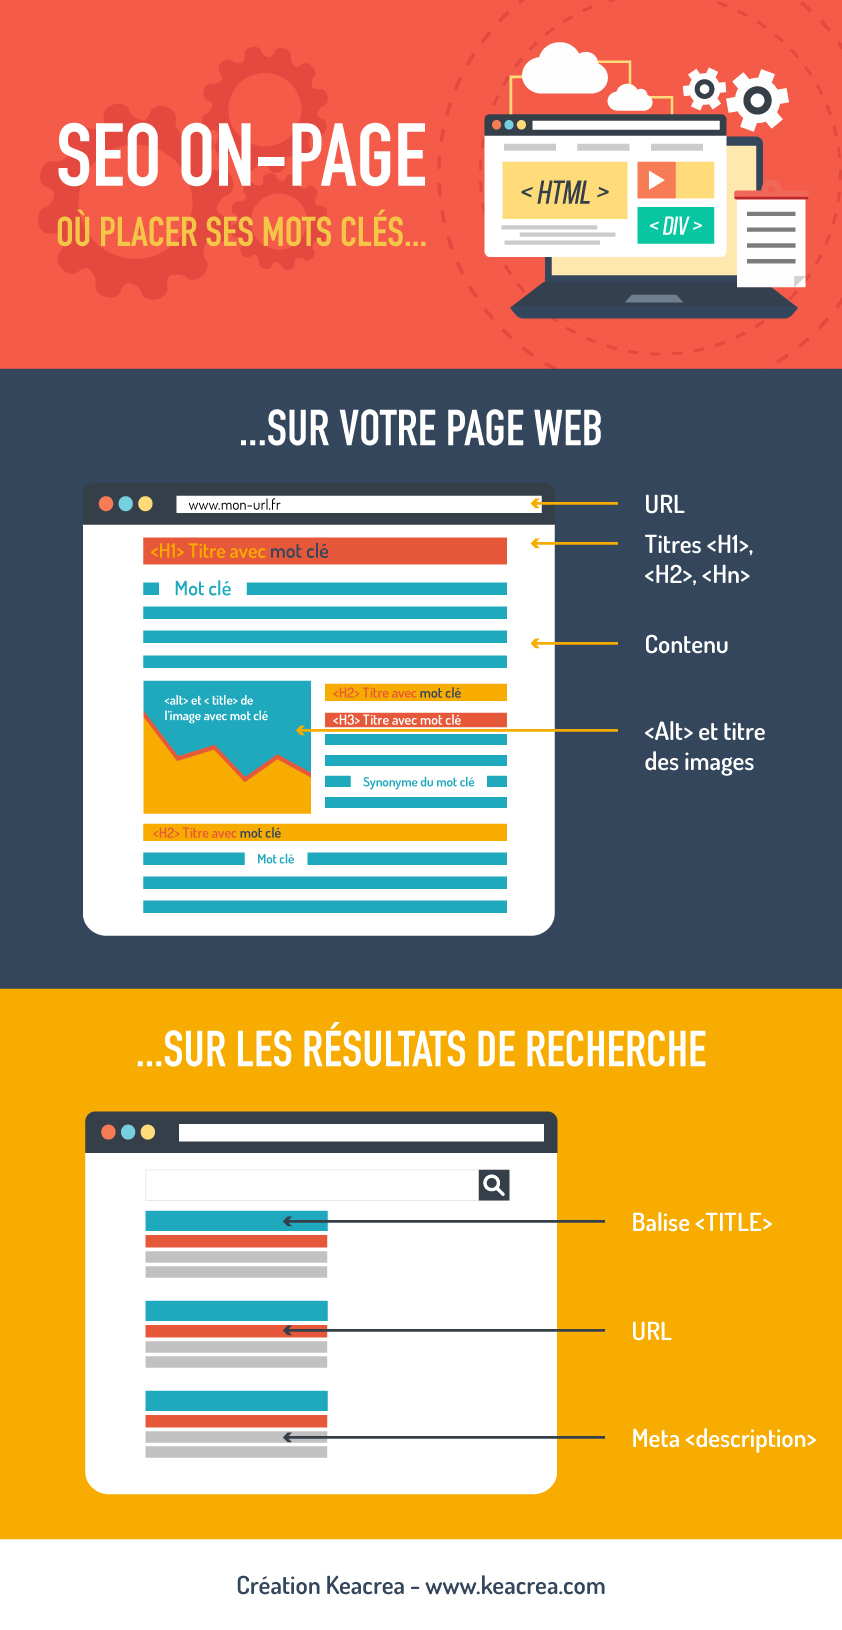 SEO on-page : où placer efficacement vos mots clés ?